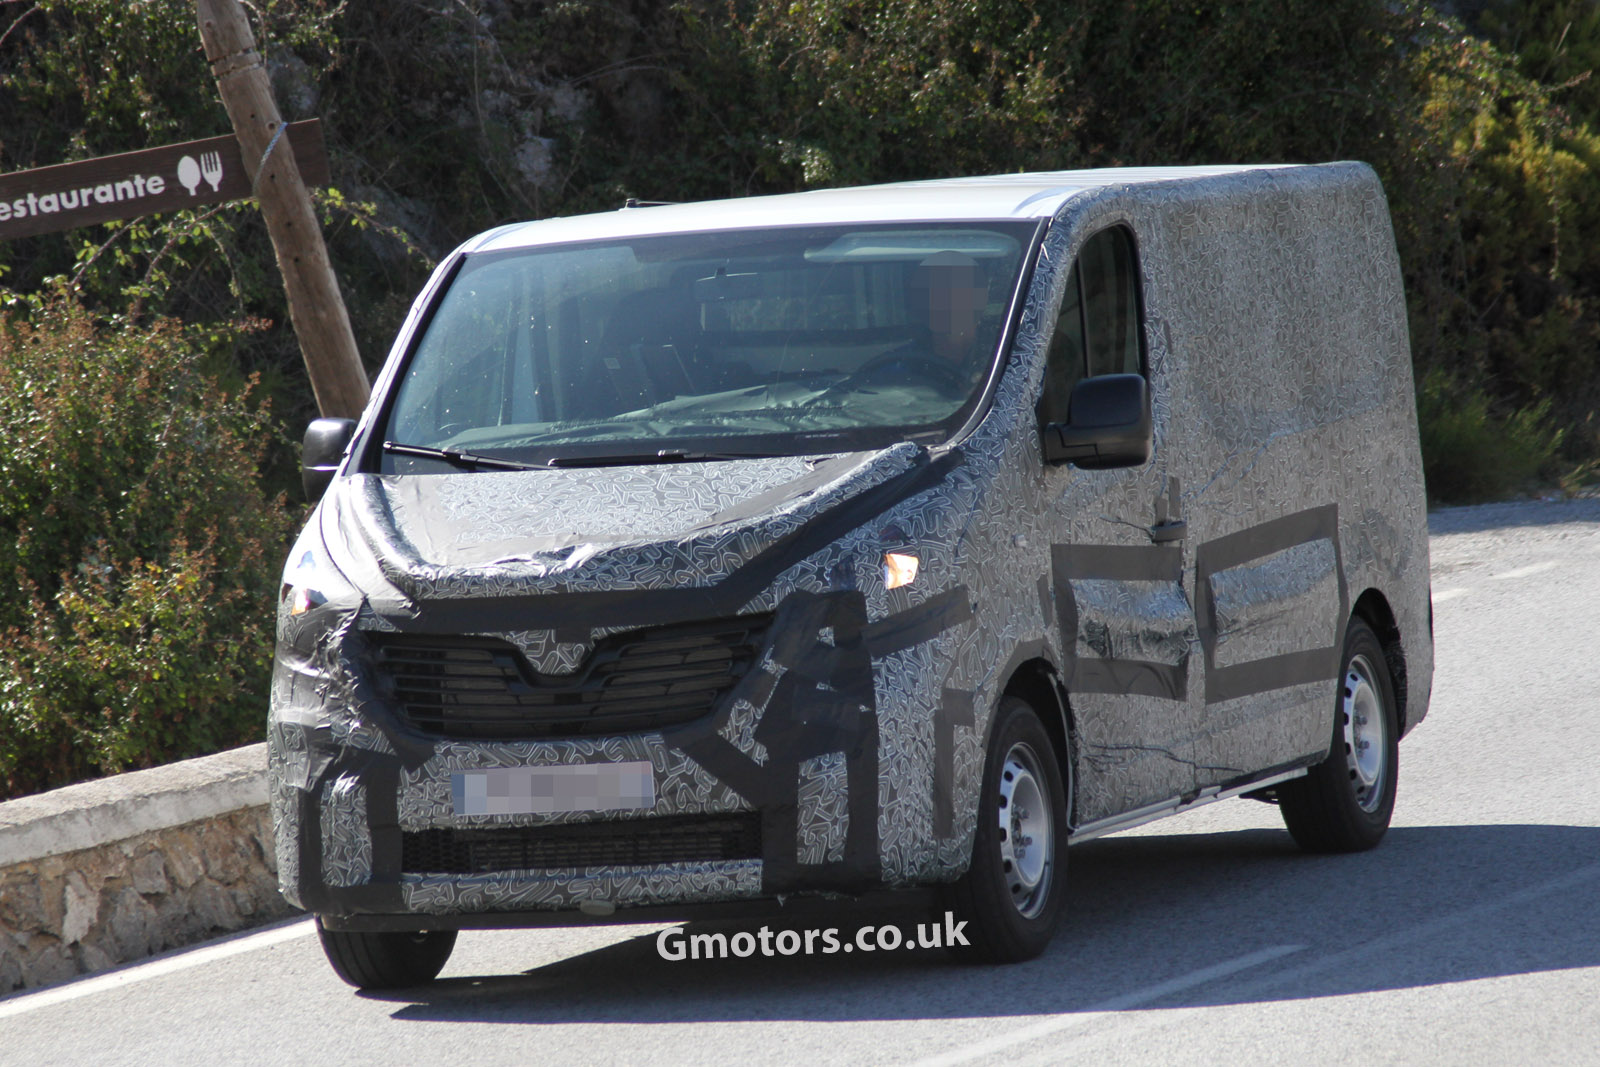 http://www.gmotors.co.uk/news/wp-content/uploads/2013/09/2015-Renault-Trafic-3.jpg